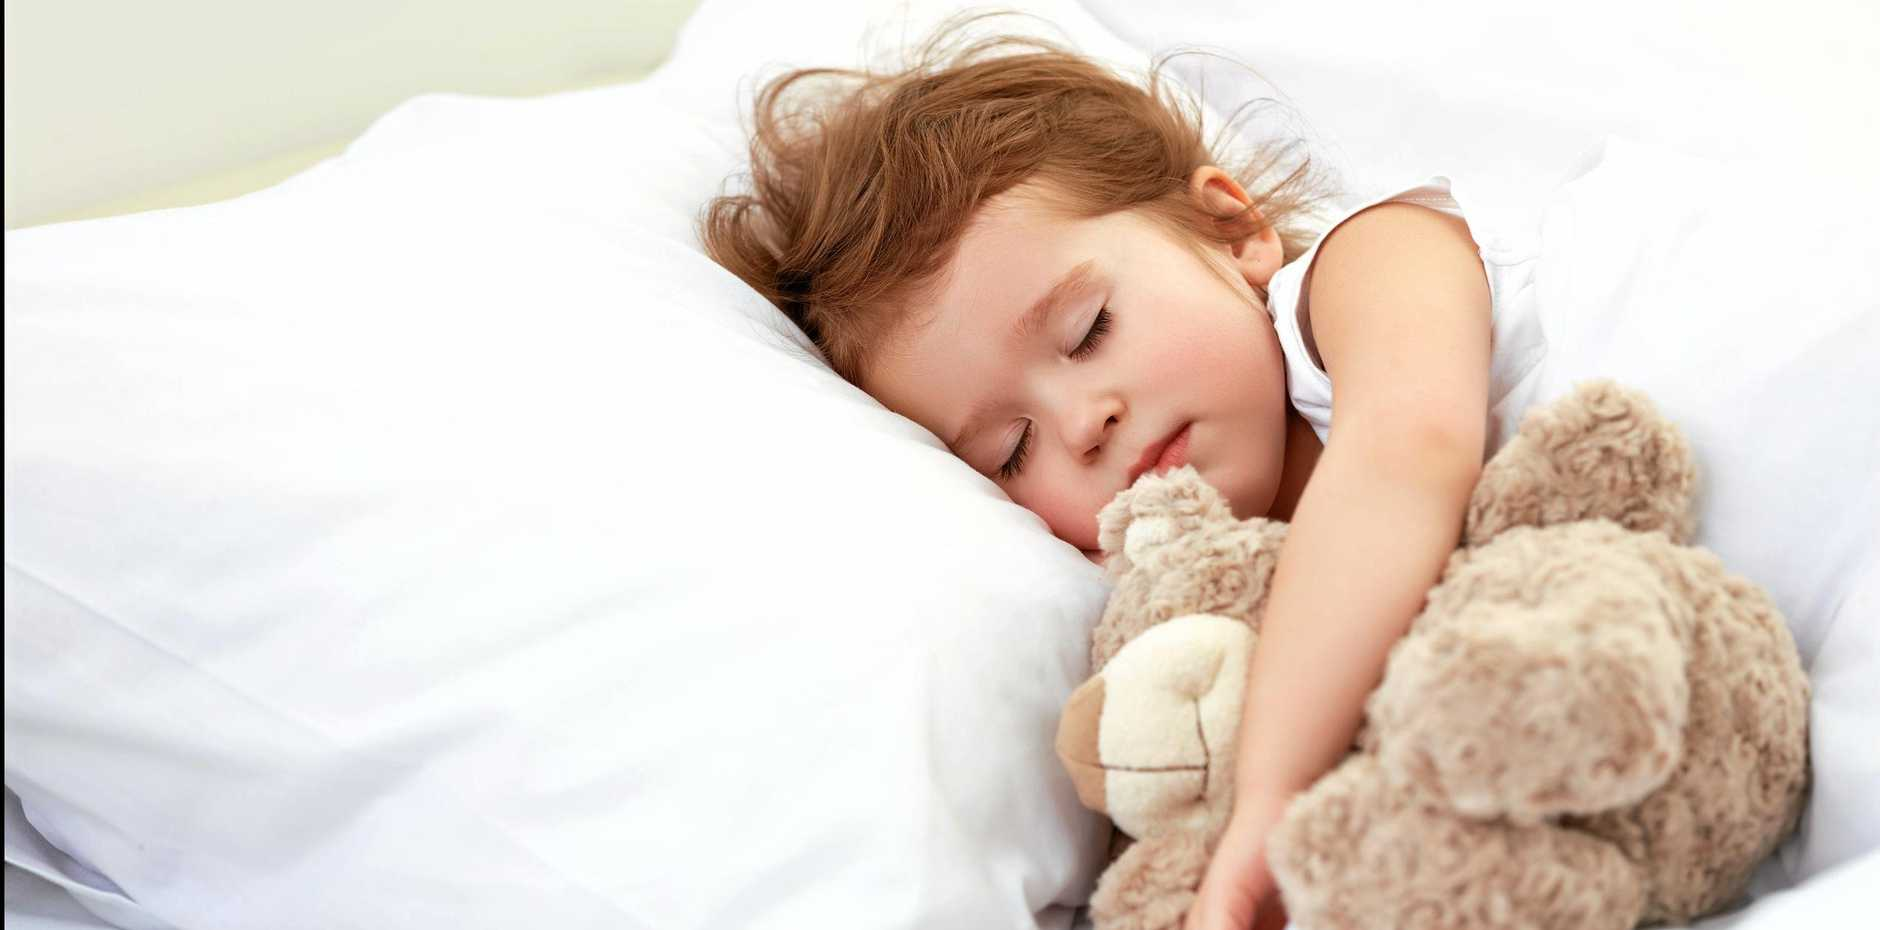 Children who don't get enough sleep are more likely to become overweight or obese.